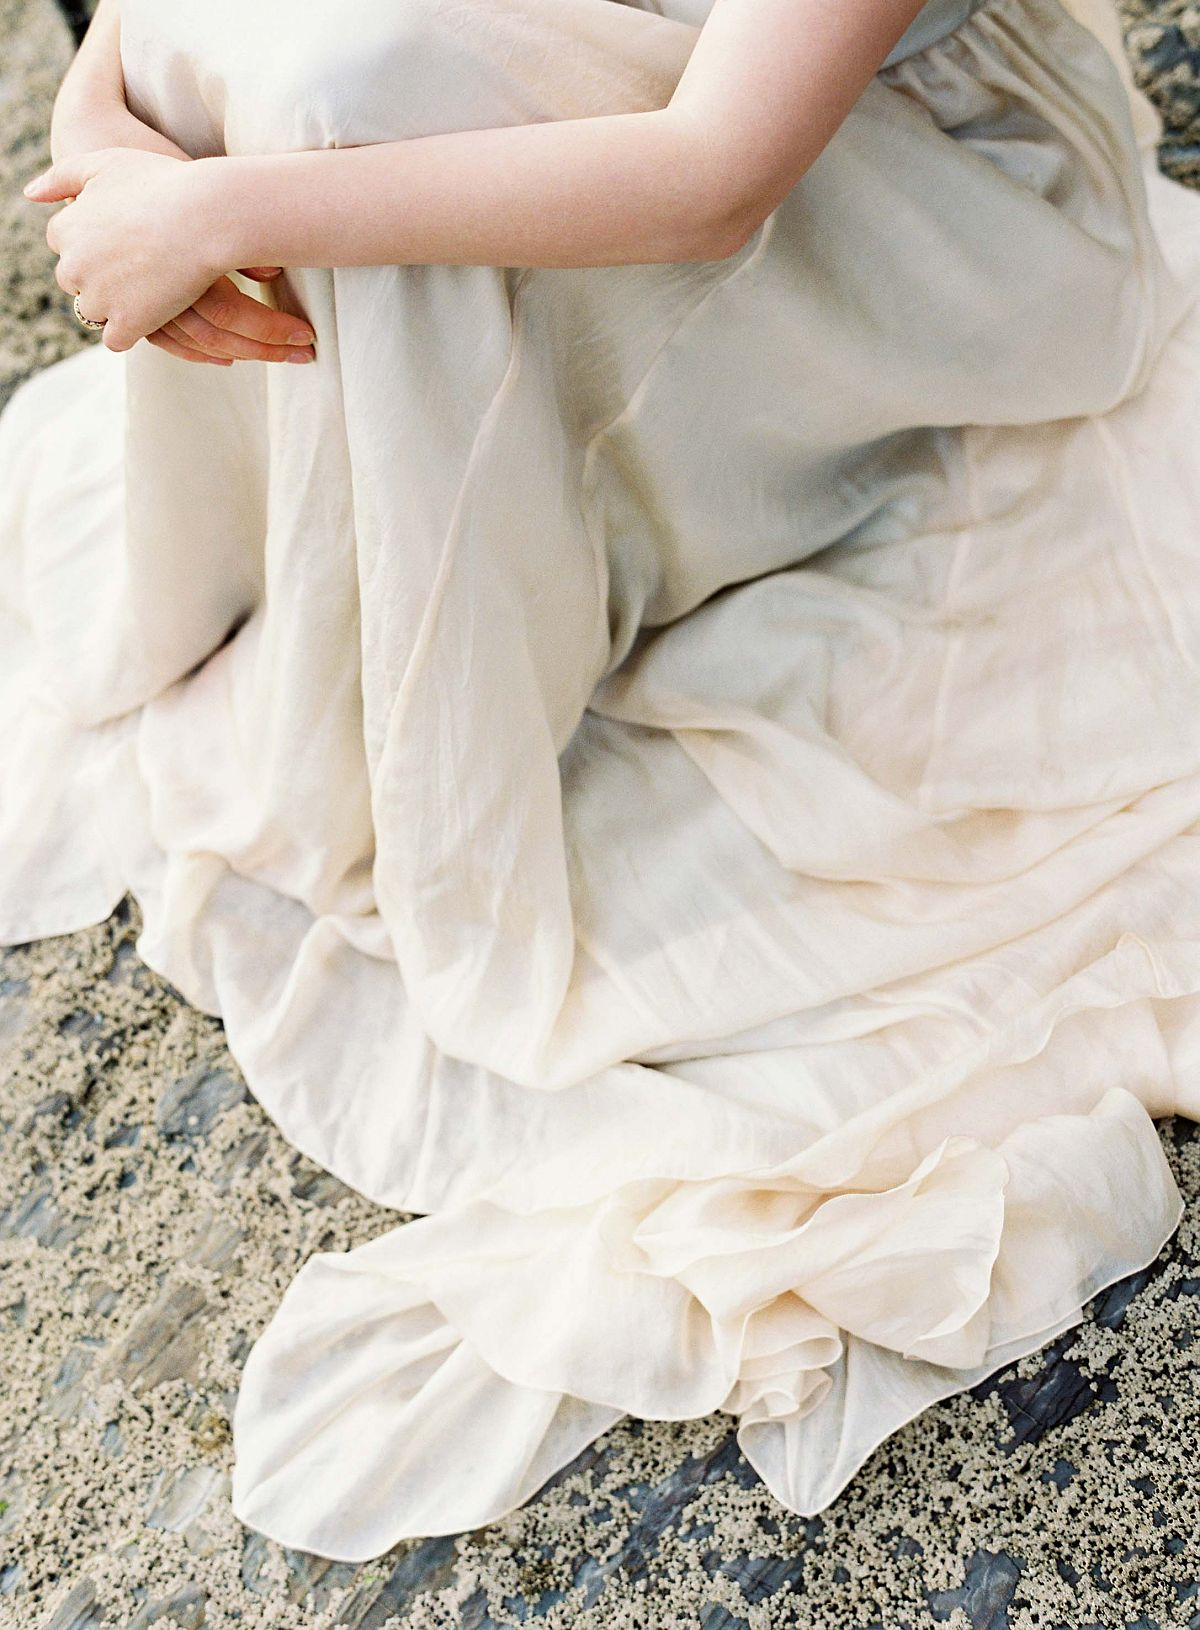 Artisan Profile: The Making of the Wedding Dress, Ribbons, and ...